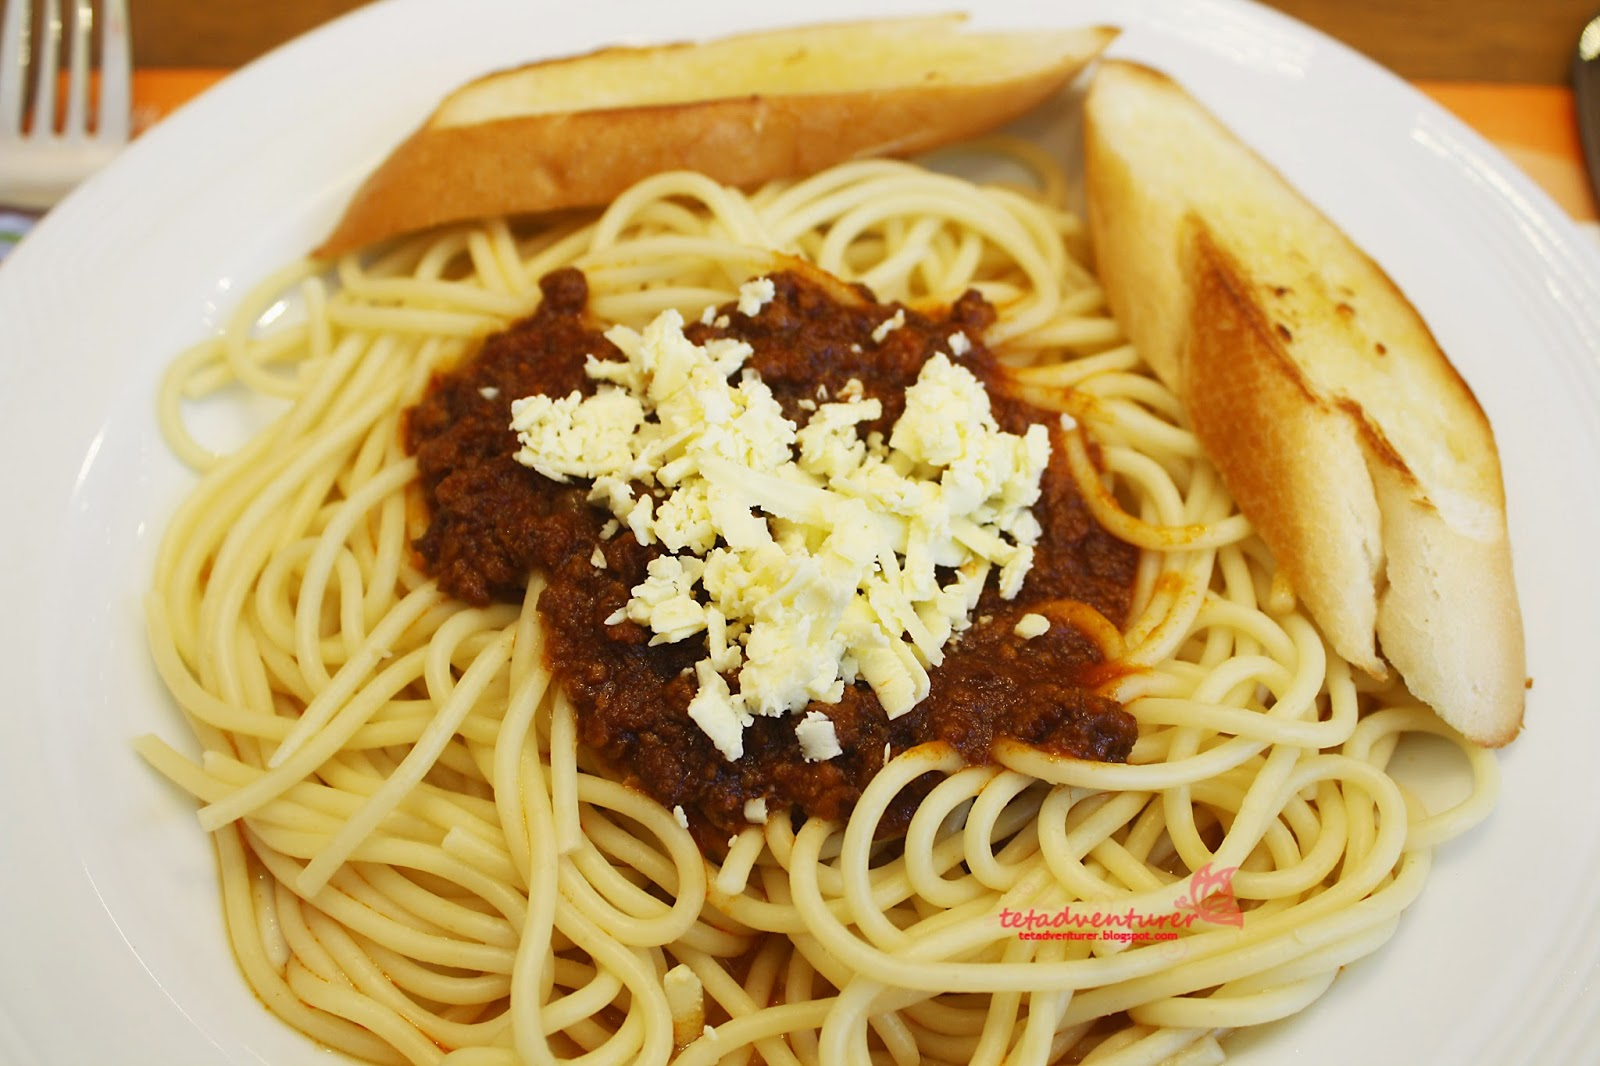 Tetadventurer going back home pancake house spaghetti with meat sauce 180 pesos its really funny that every time we go to pancake house we always thought that the sauce is too little ccuart Gallery